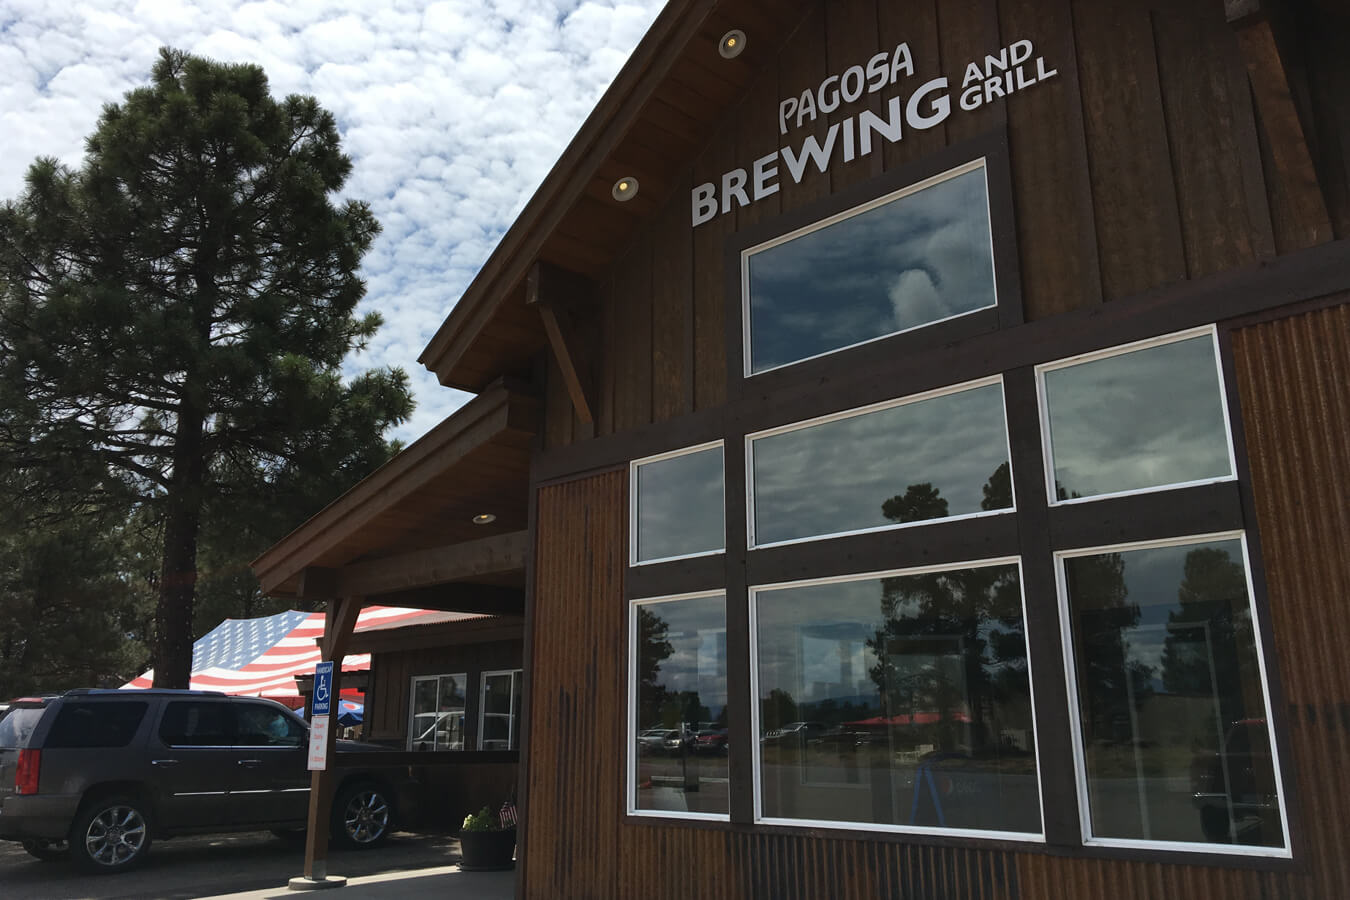 Pagosa Brewing Company & Grill